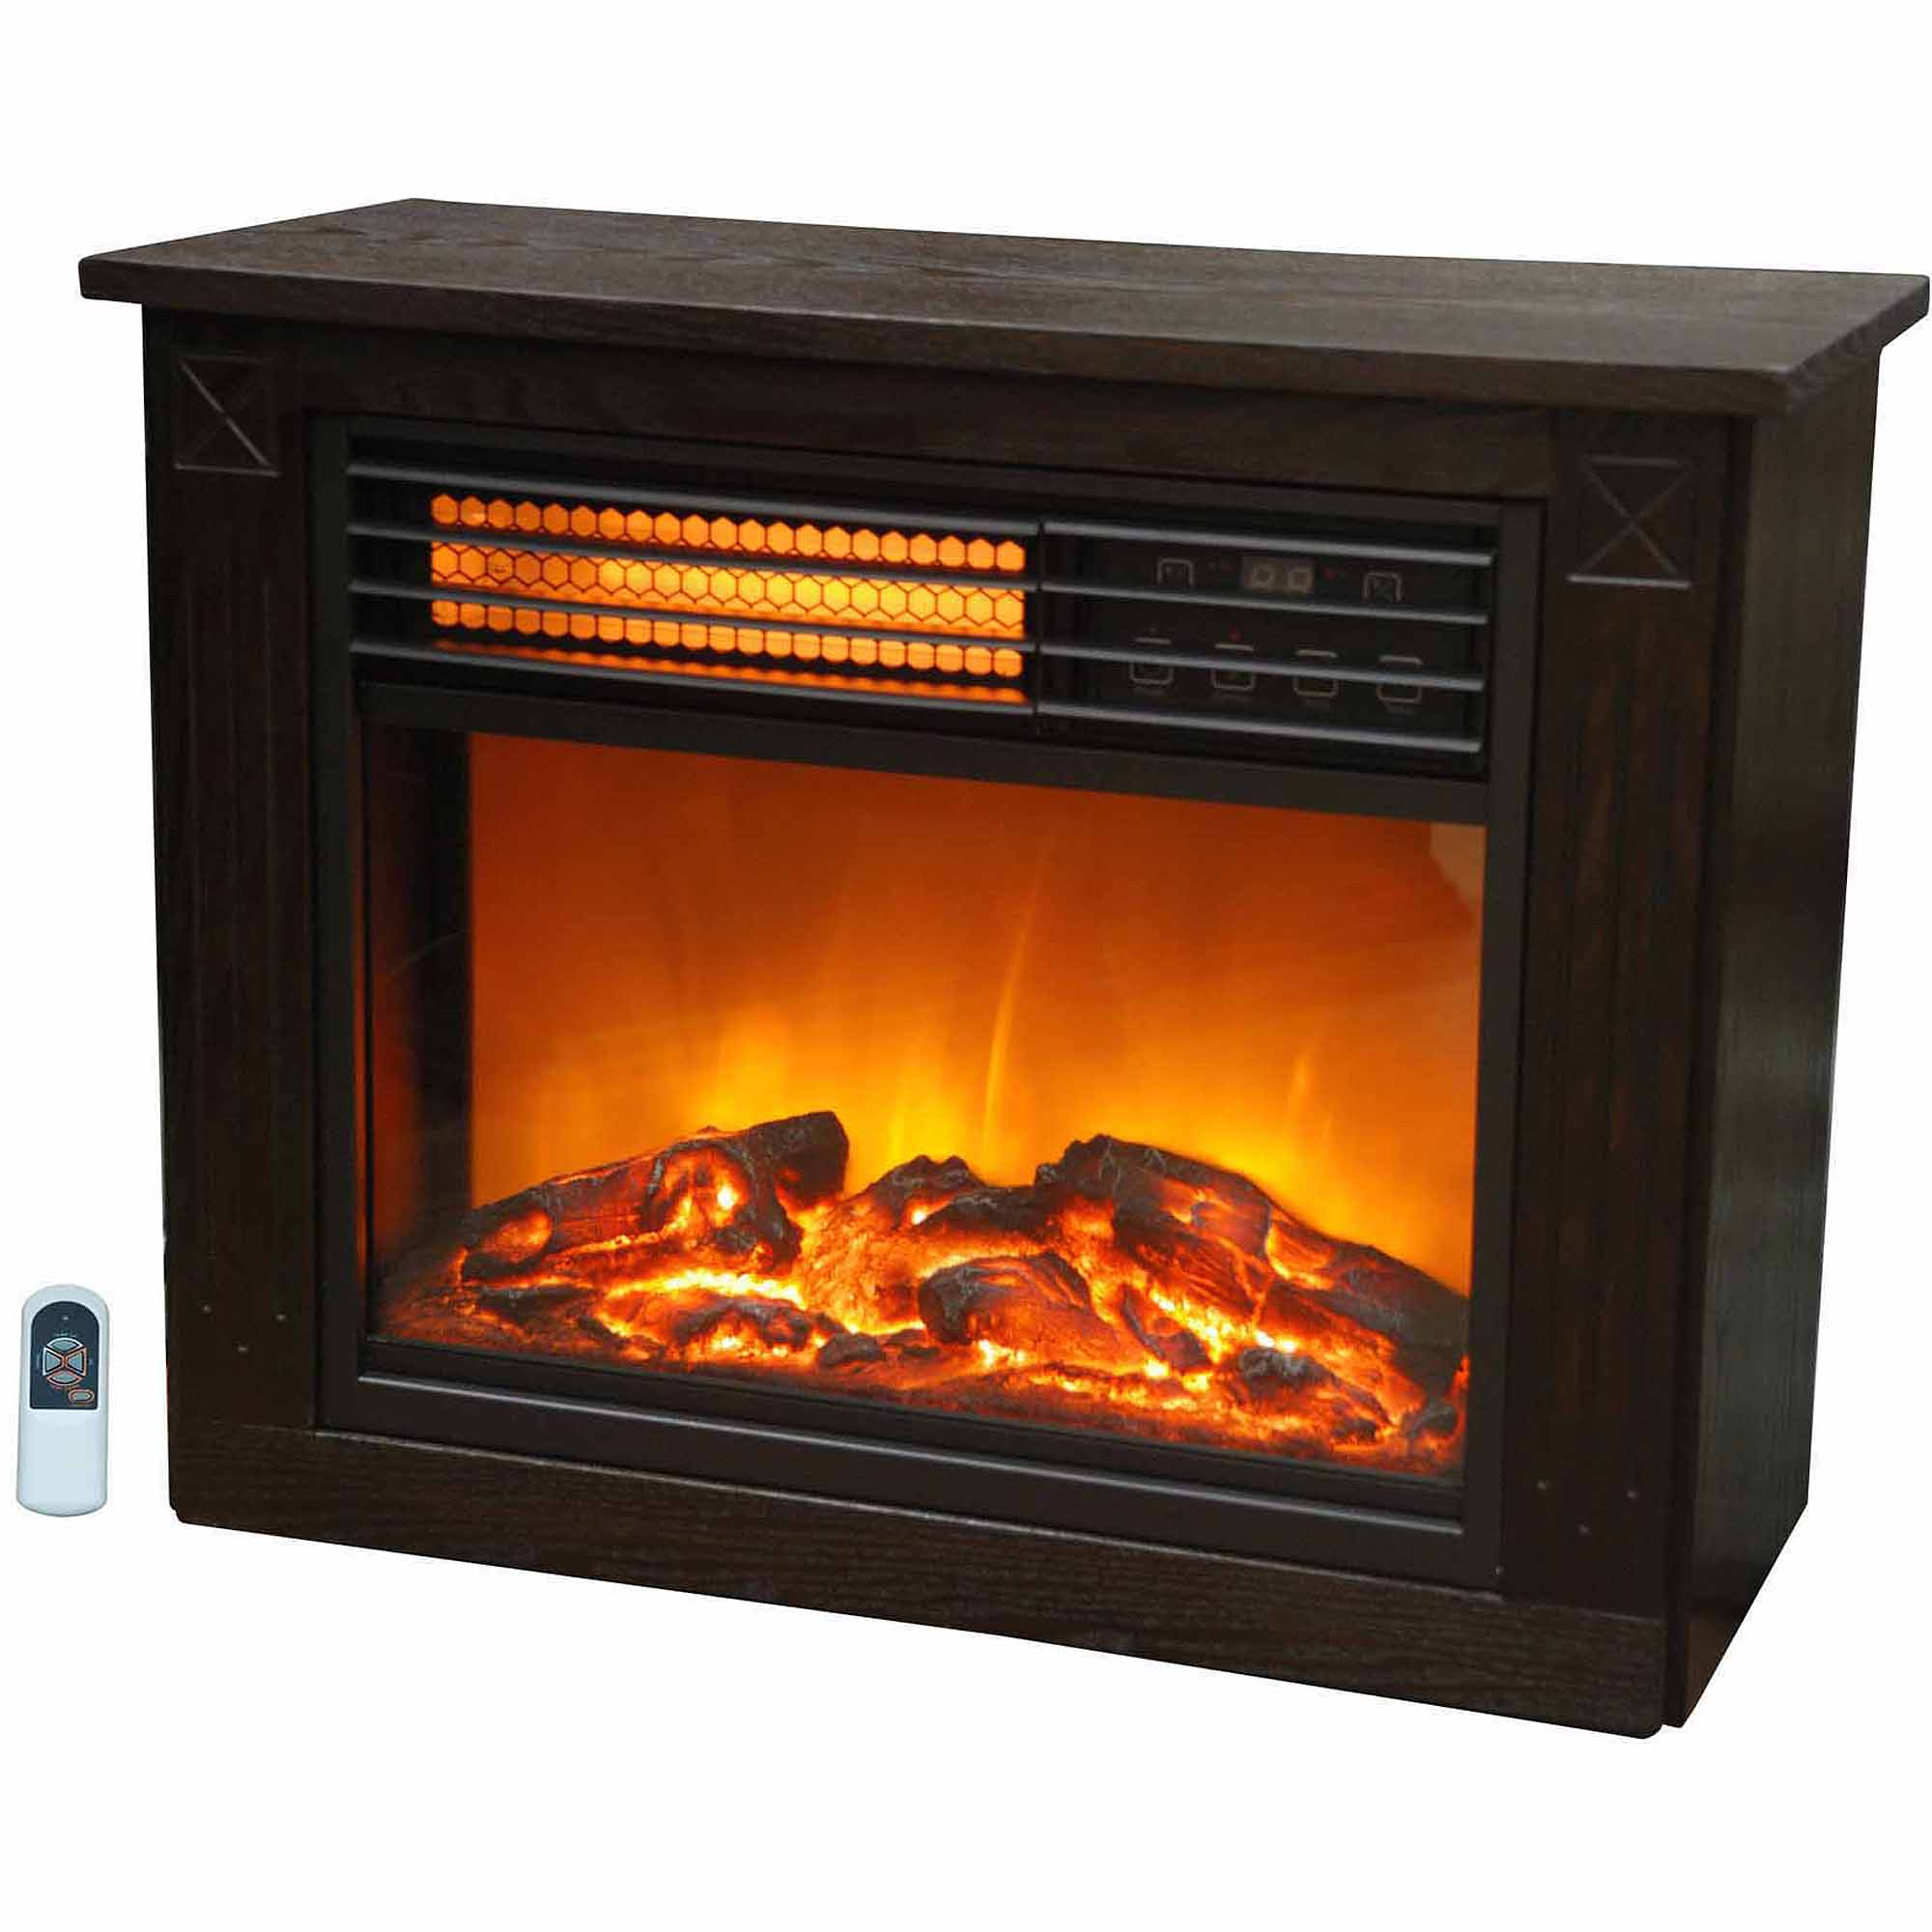 Lifezone Compact Infrared Electric Space Heater Fireplace, SGH-2001FRP13